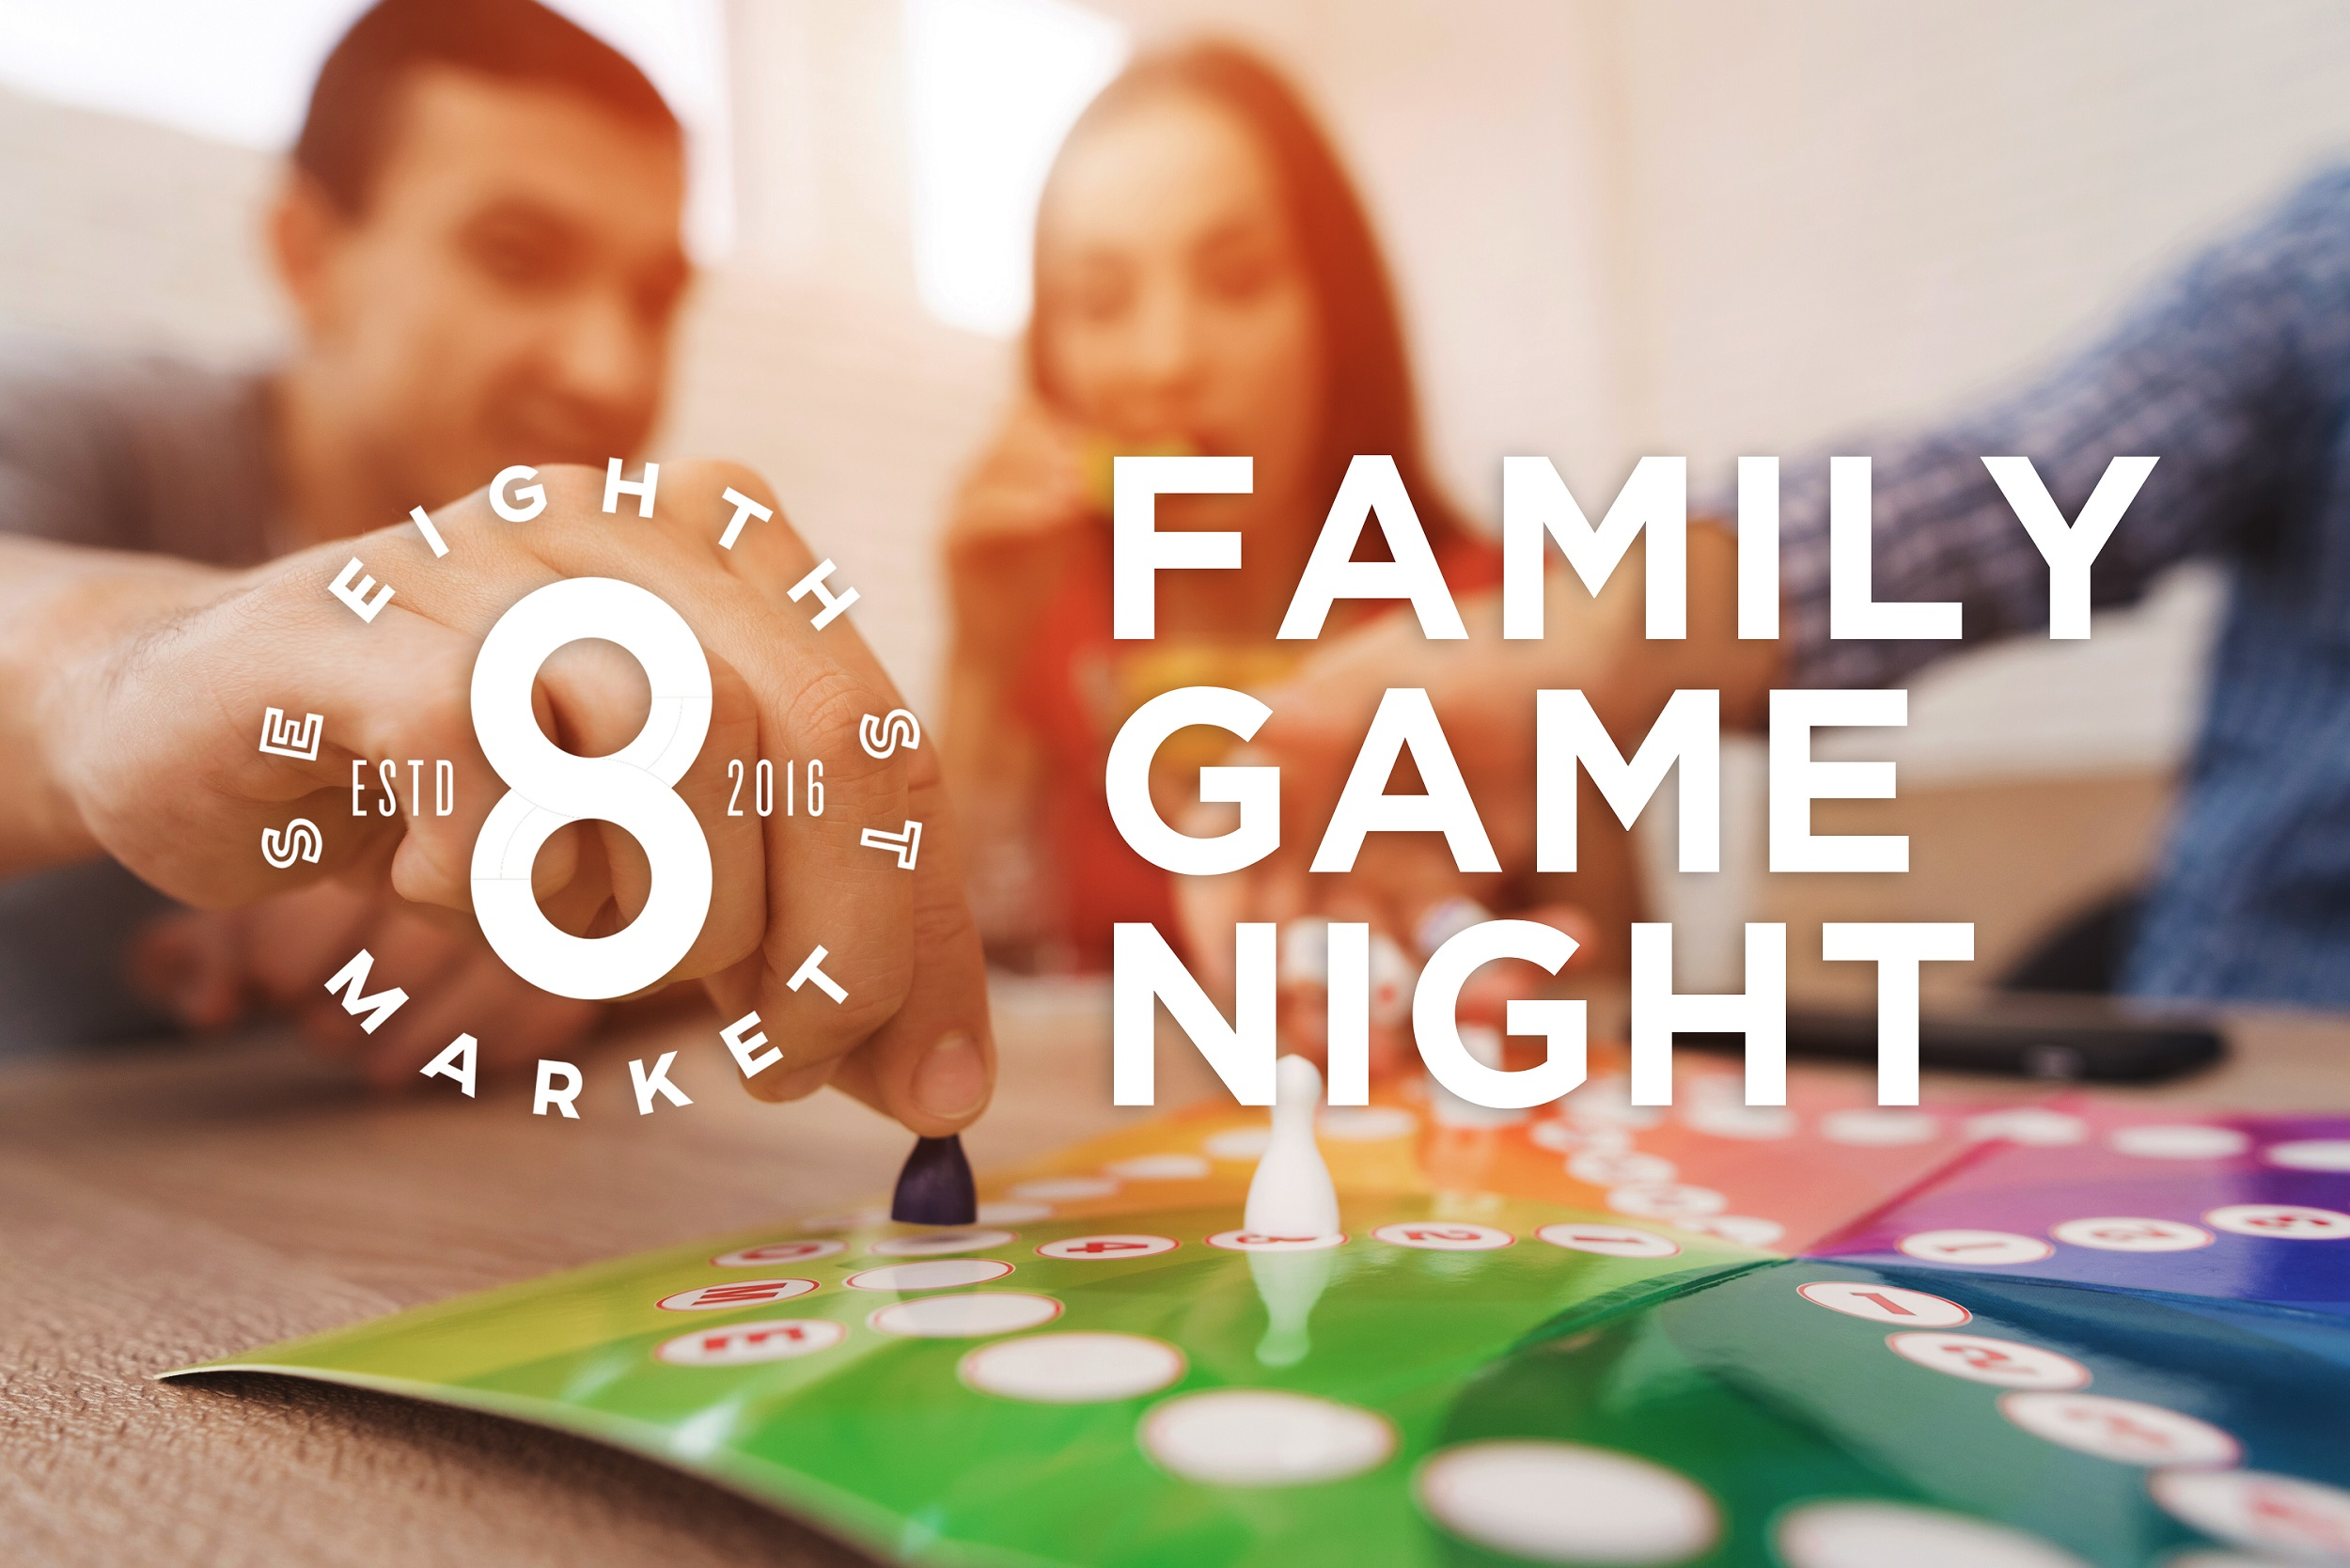 Family Game Night Introduces Familial Element To 8th Street